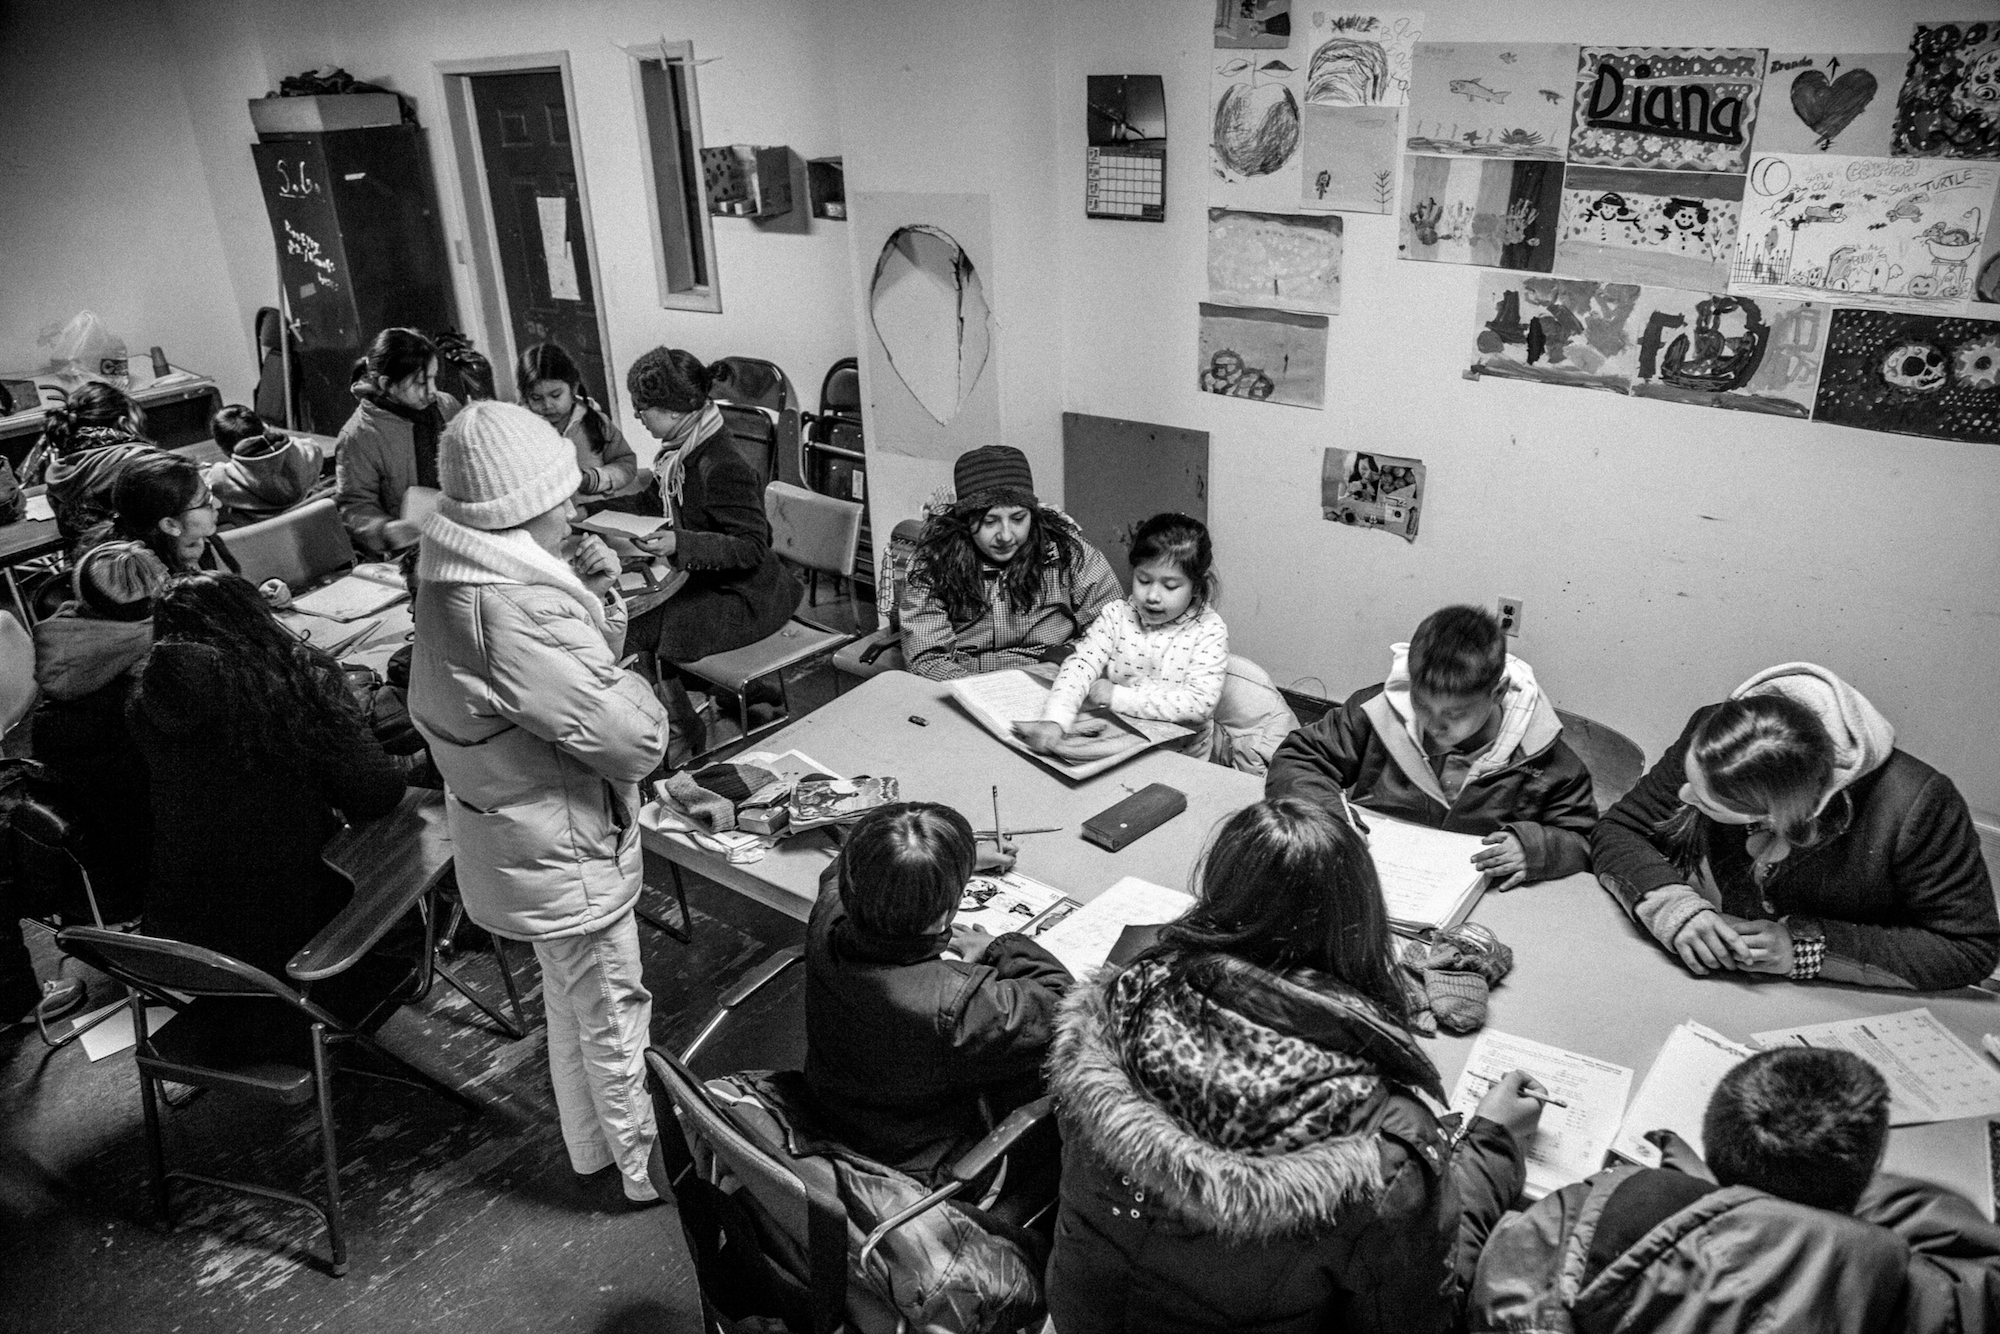 Angelo Cabrera founded the Mexican American Students Alliance (MASA) in the Bronx, which provides free tutoring and educational services to Mexican-American students and their families. (Maite H. Mateo/GroundTruth)